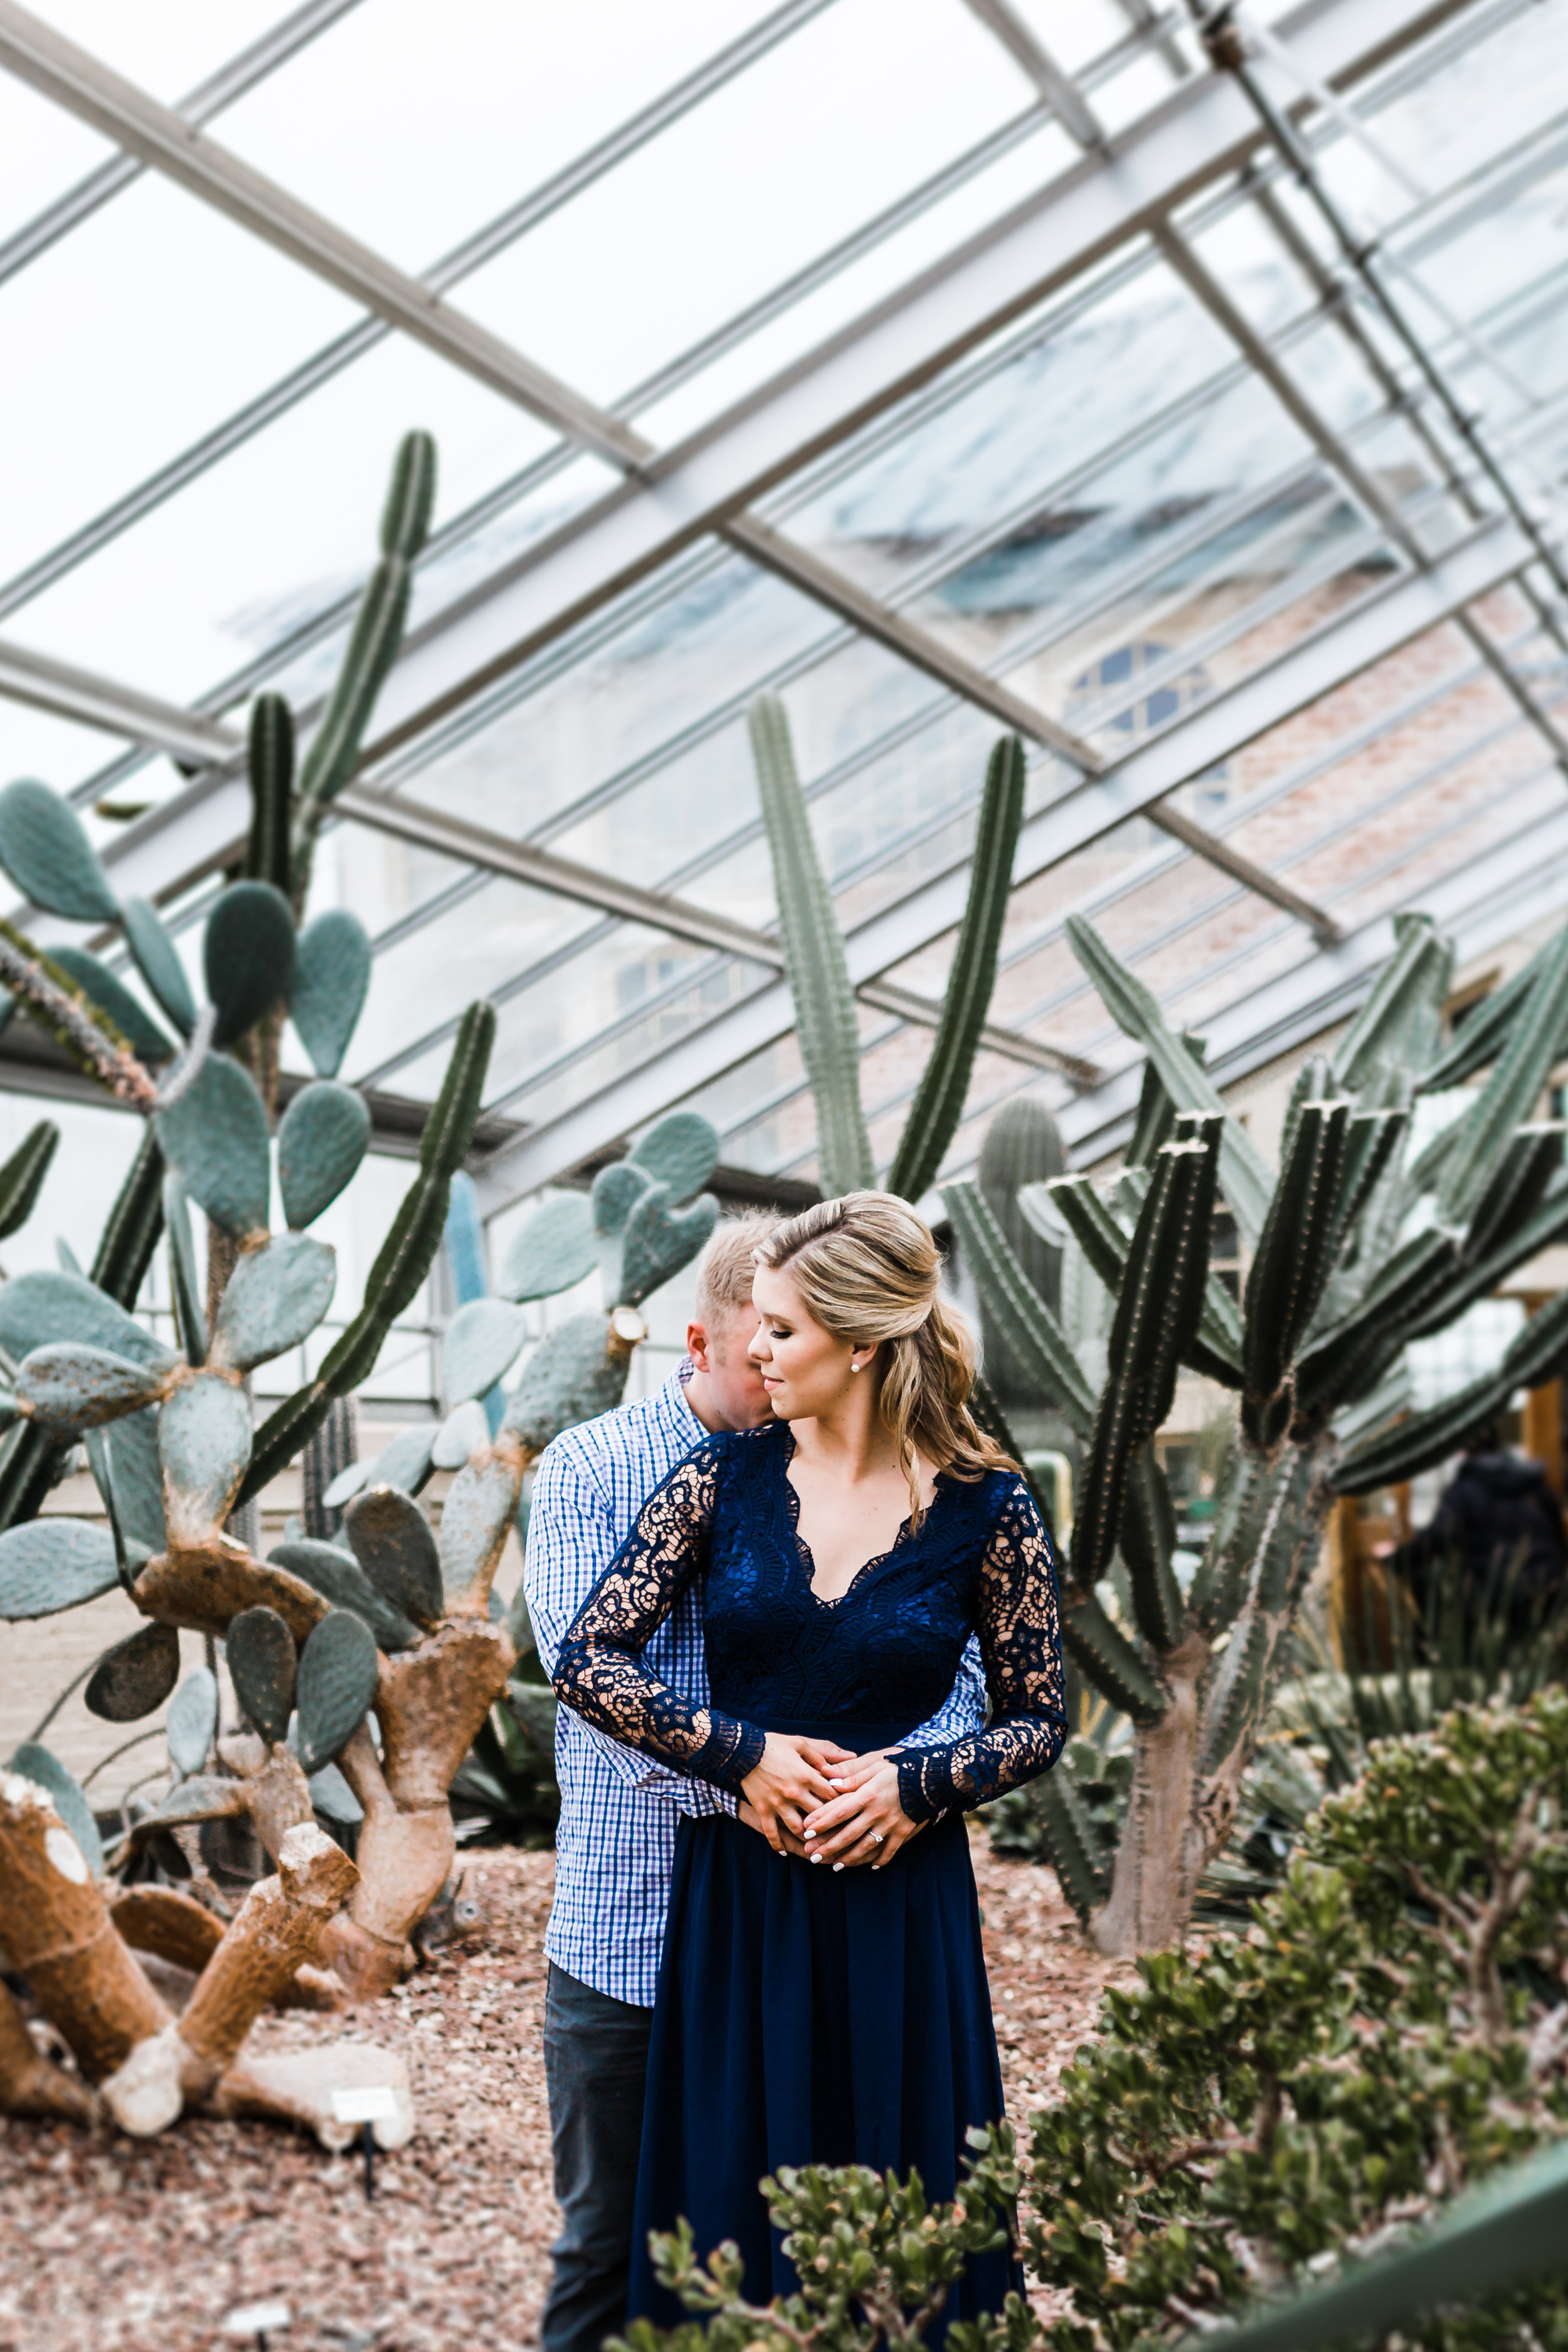 Rawling Conservatory in Baltimore Maryland - best husband and wife photography team in MD